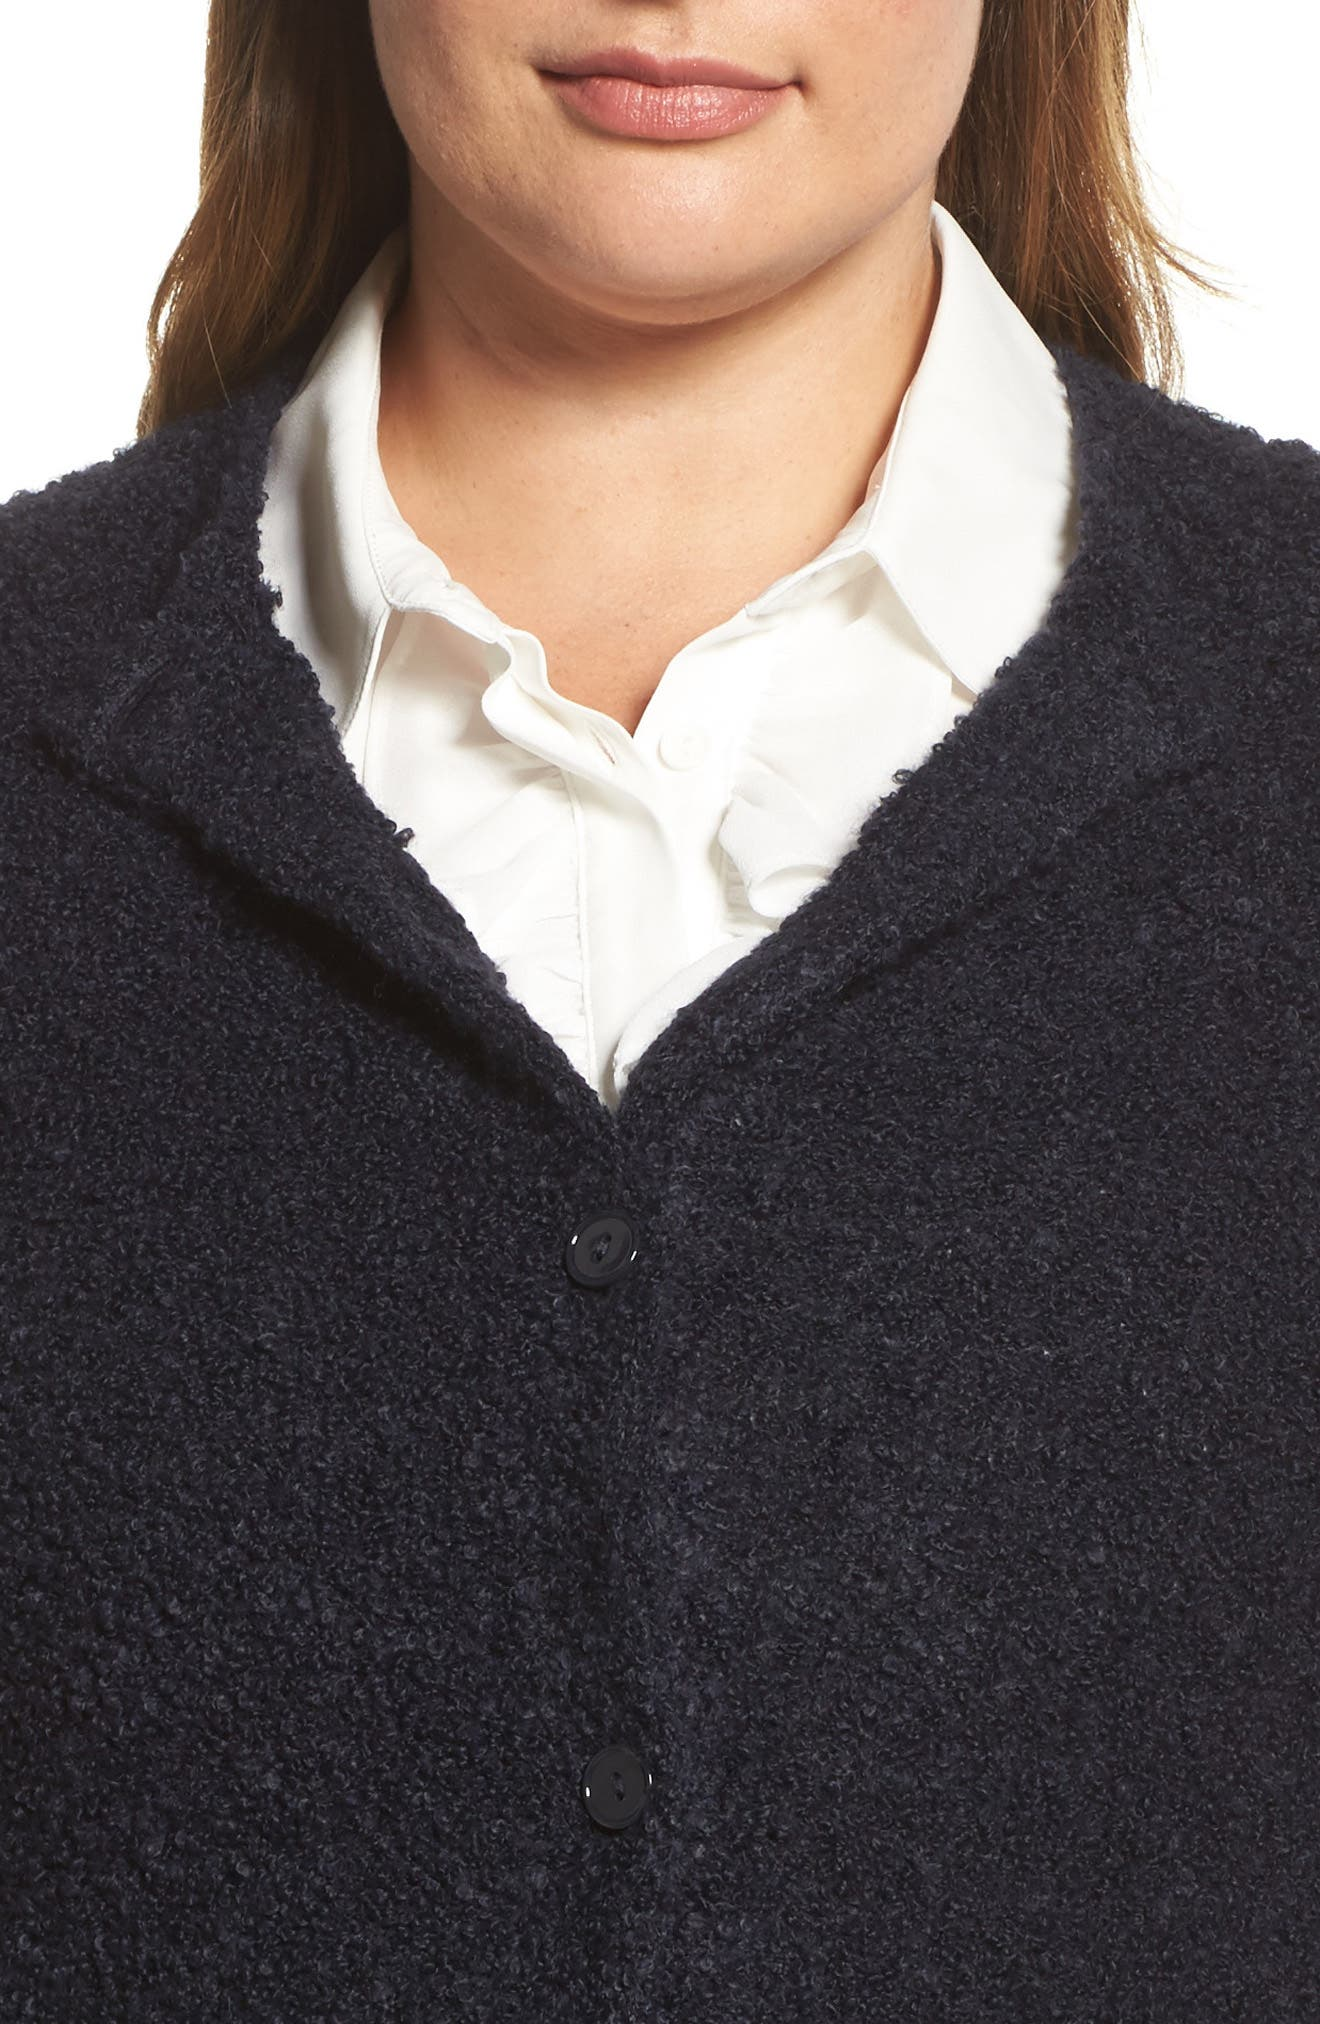 Melodico Button-Up Sweater,                             Alternate thumbnail 4, color,